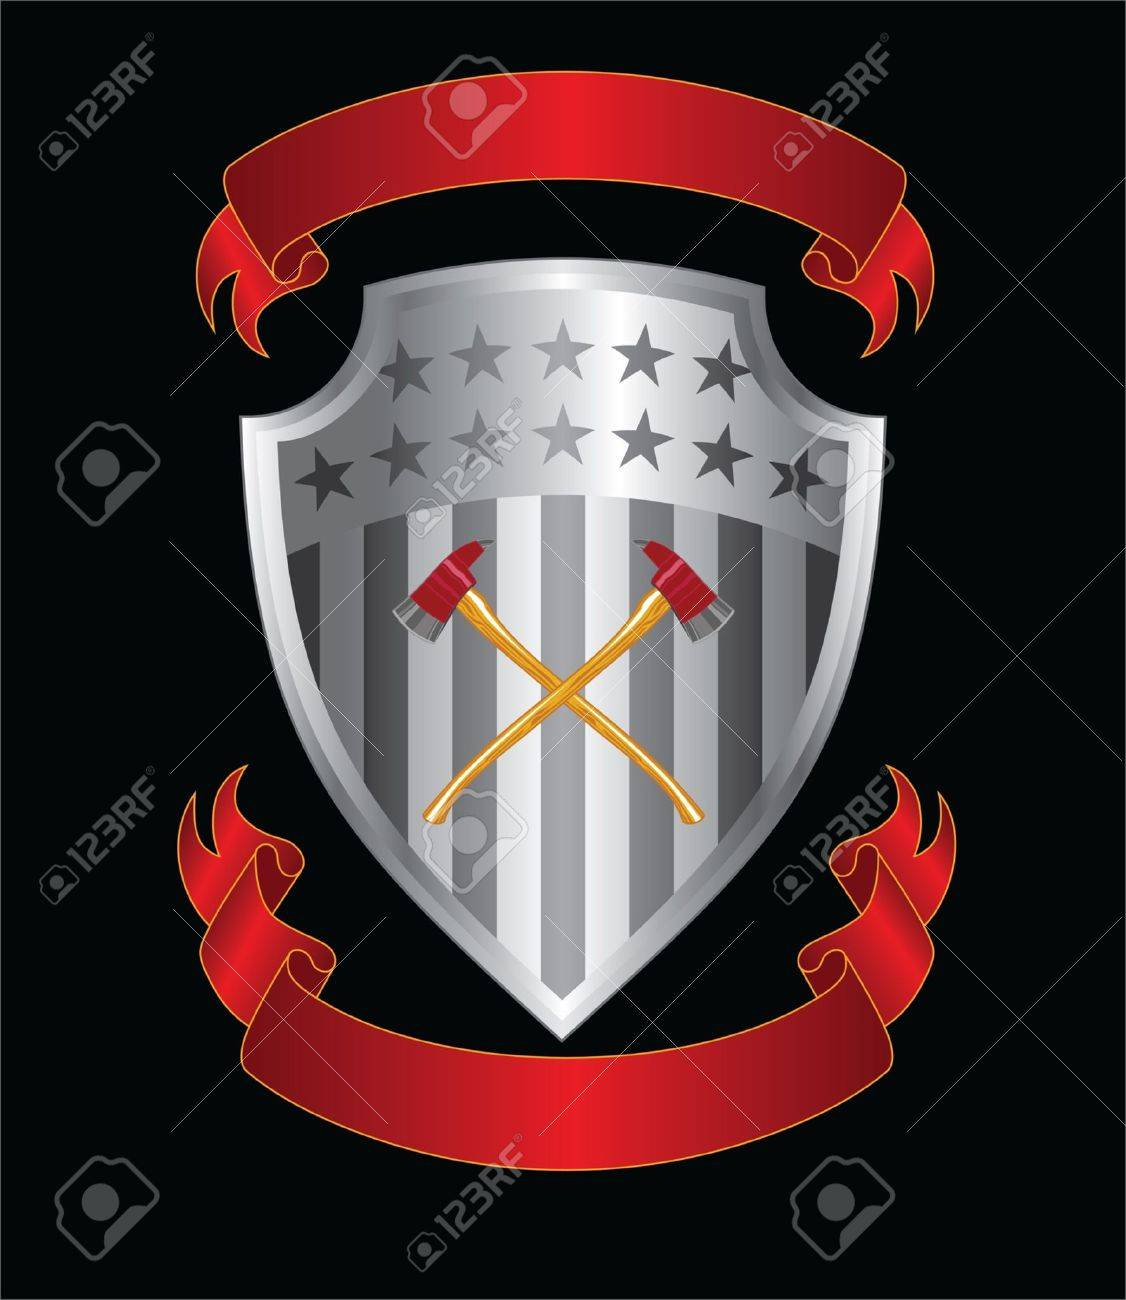 Firefighter Axes On Shield is an illustration of a silver stars and stripes shield with crossed firefighter axes and two ribbons or banners. Stock Vector - 16536534